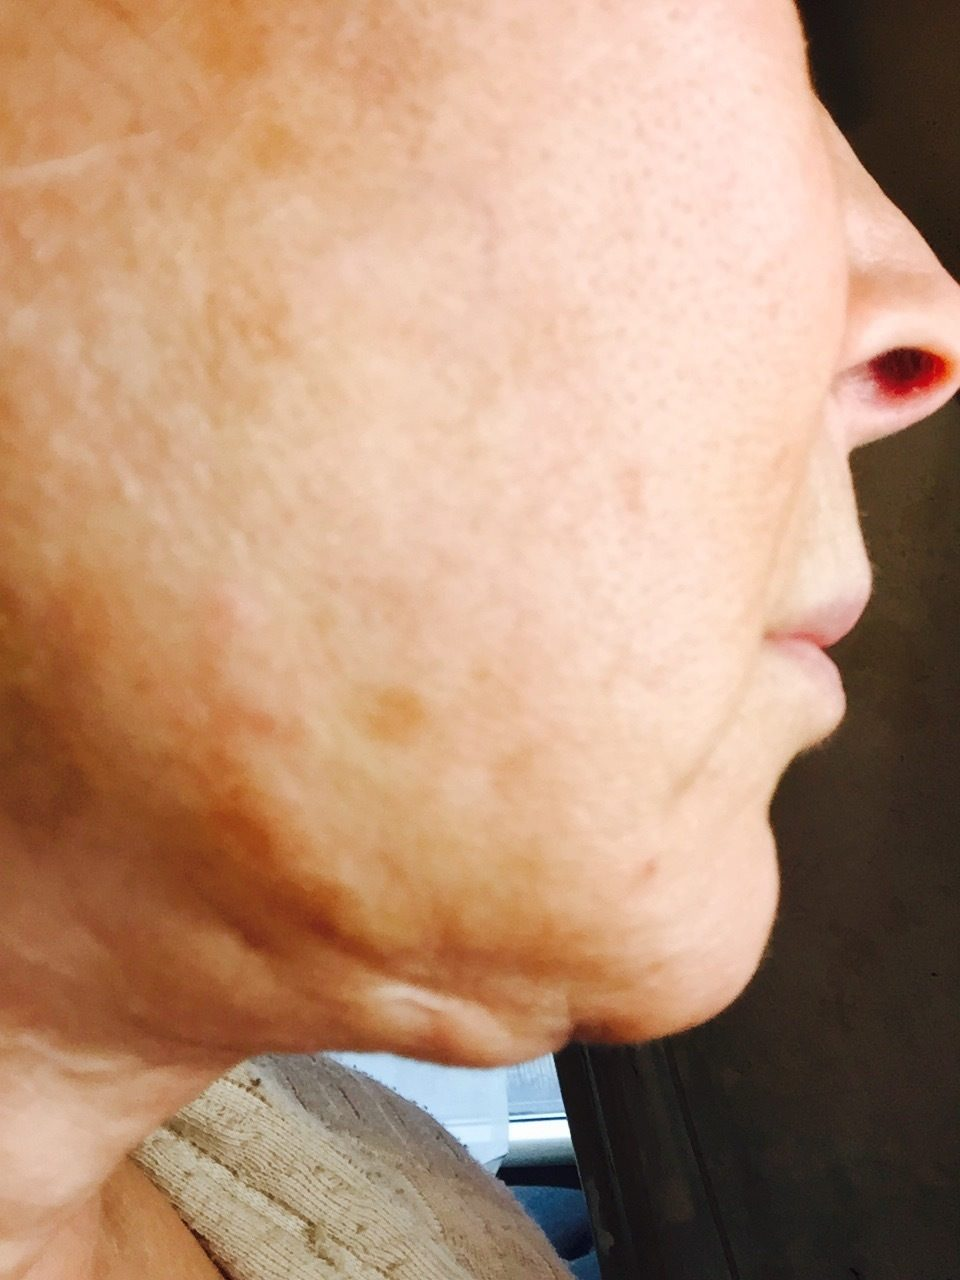 lifestyle lift reviews -- at lifesyle lift, we focus on your face, eyes and neck area now you can wake up every day looking years younger call 888-80.